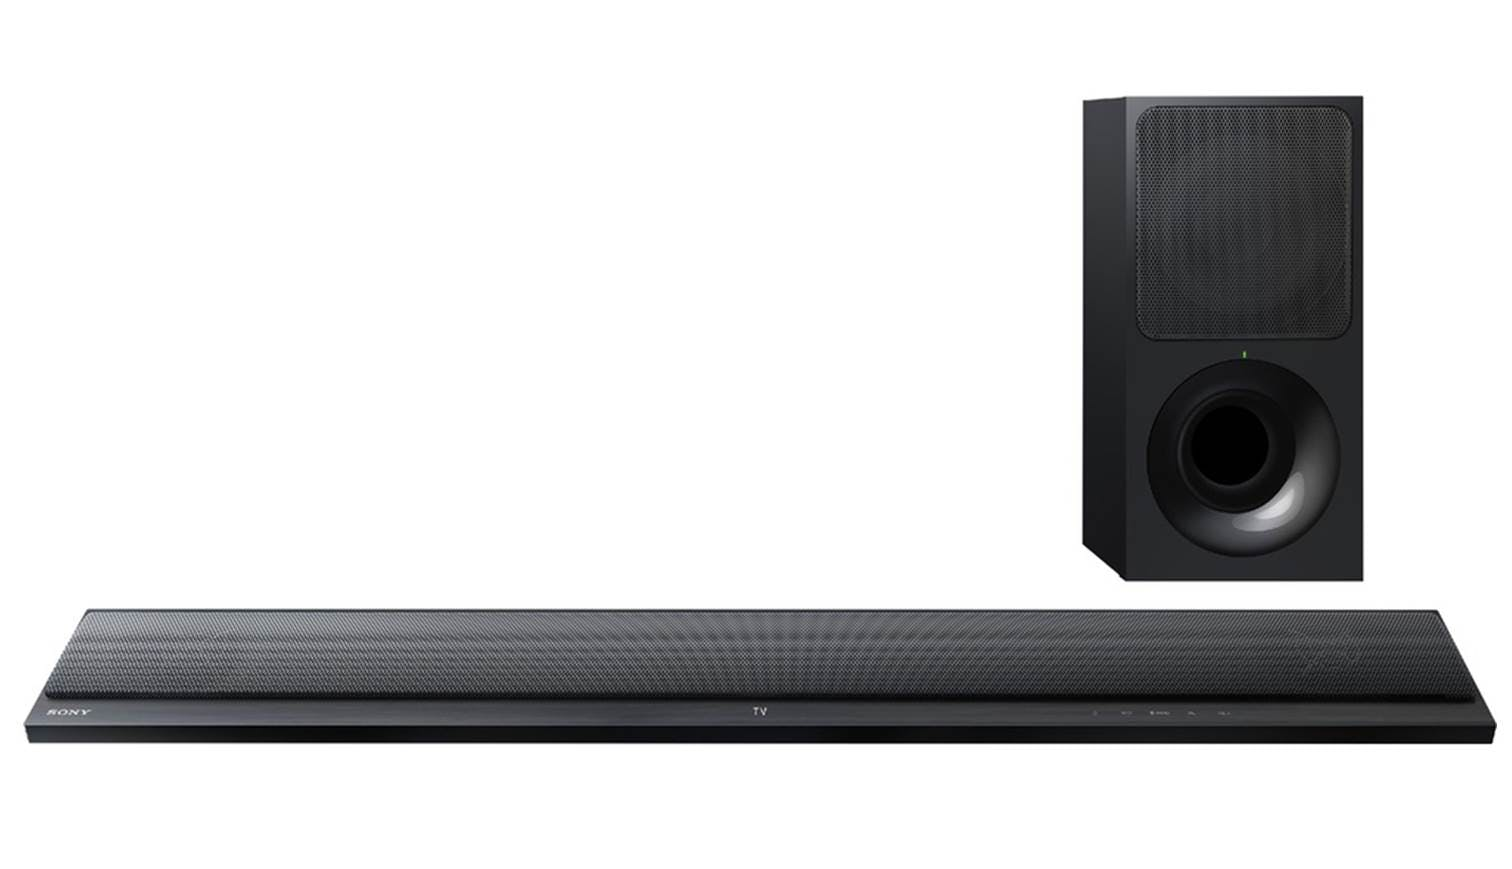 Soundbar Sound Bar Samsung Yamaha Philips Lg More Harvey Jvc Is All About The Best In Minus Wiring Sony Ht Ct390 21ch With Bluetooth